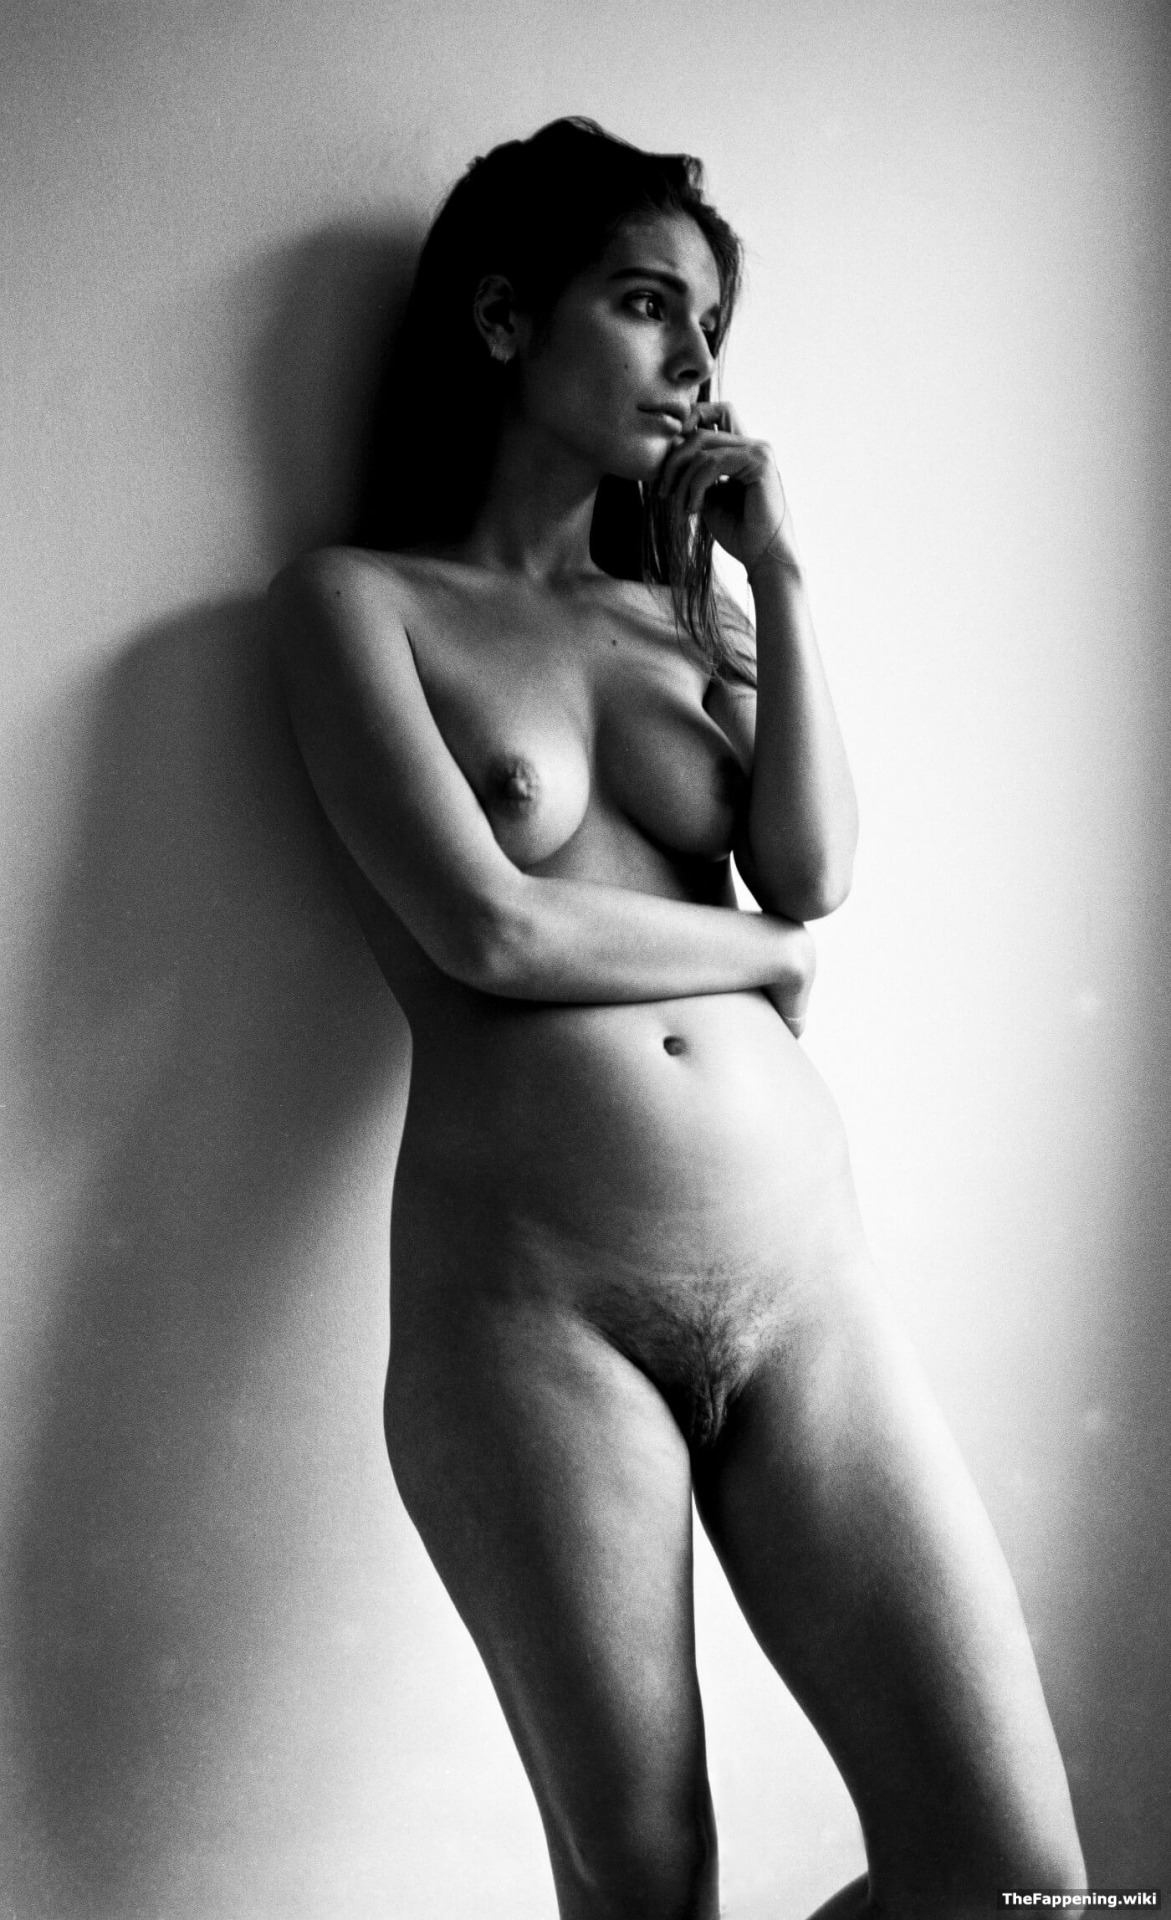 XXX Caitlin Stasey nudes (12 foto and video), Tits, Sideboobs, Twitter, bra 2017